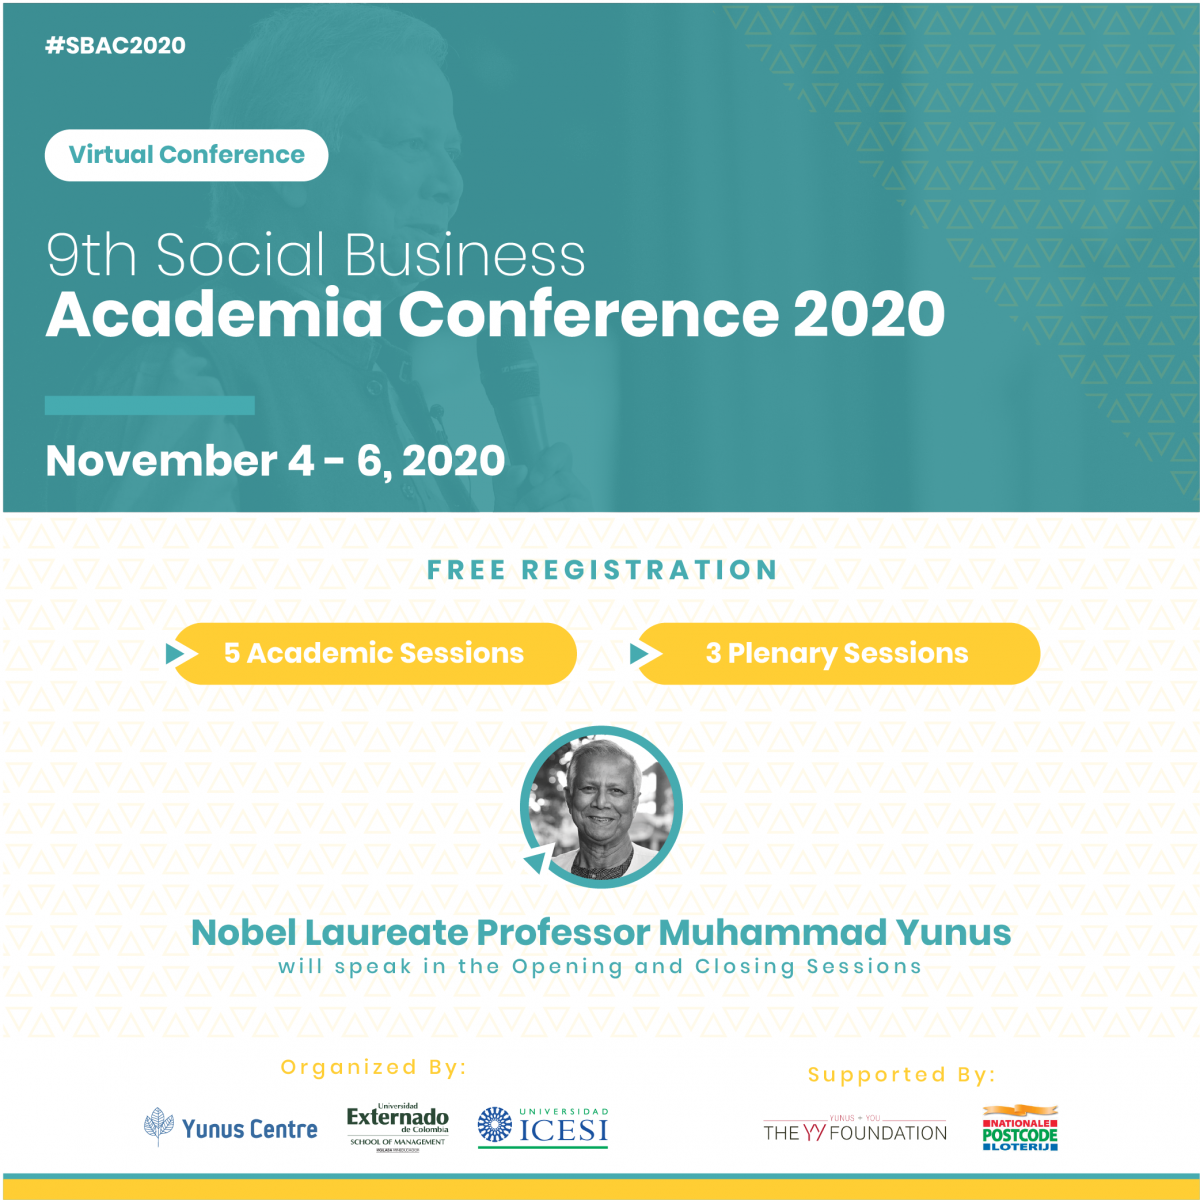 9th Social Business Academia Conference - November 4-6, 2020